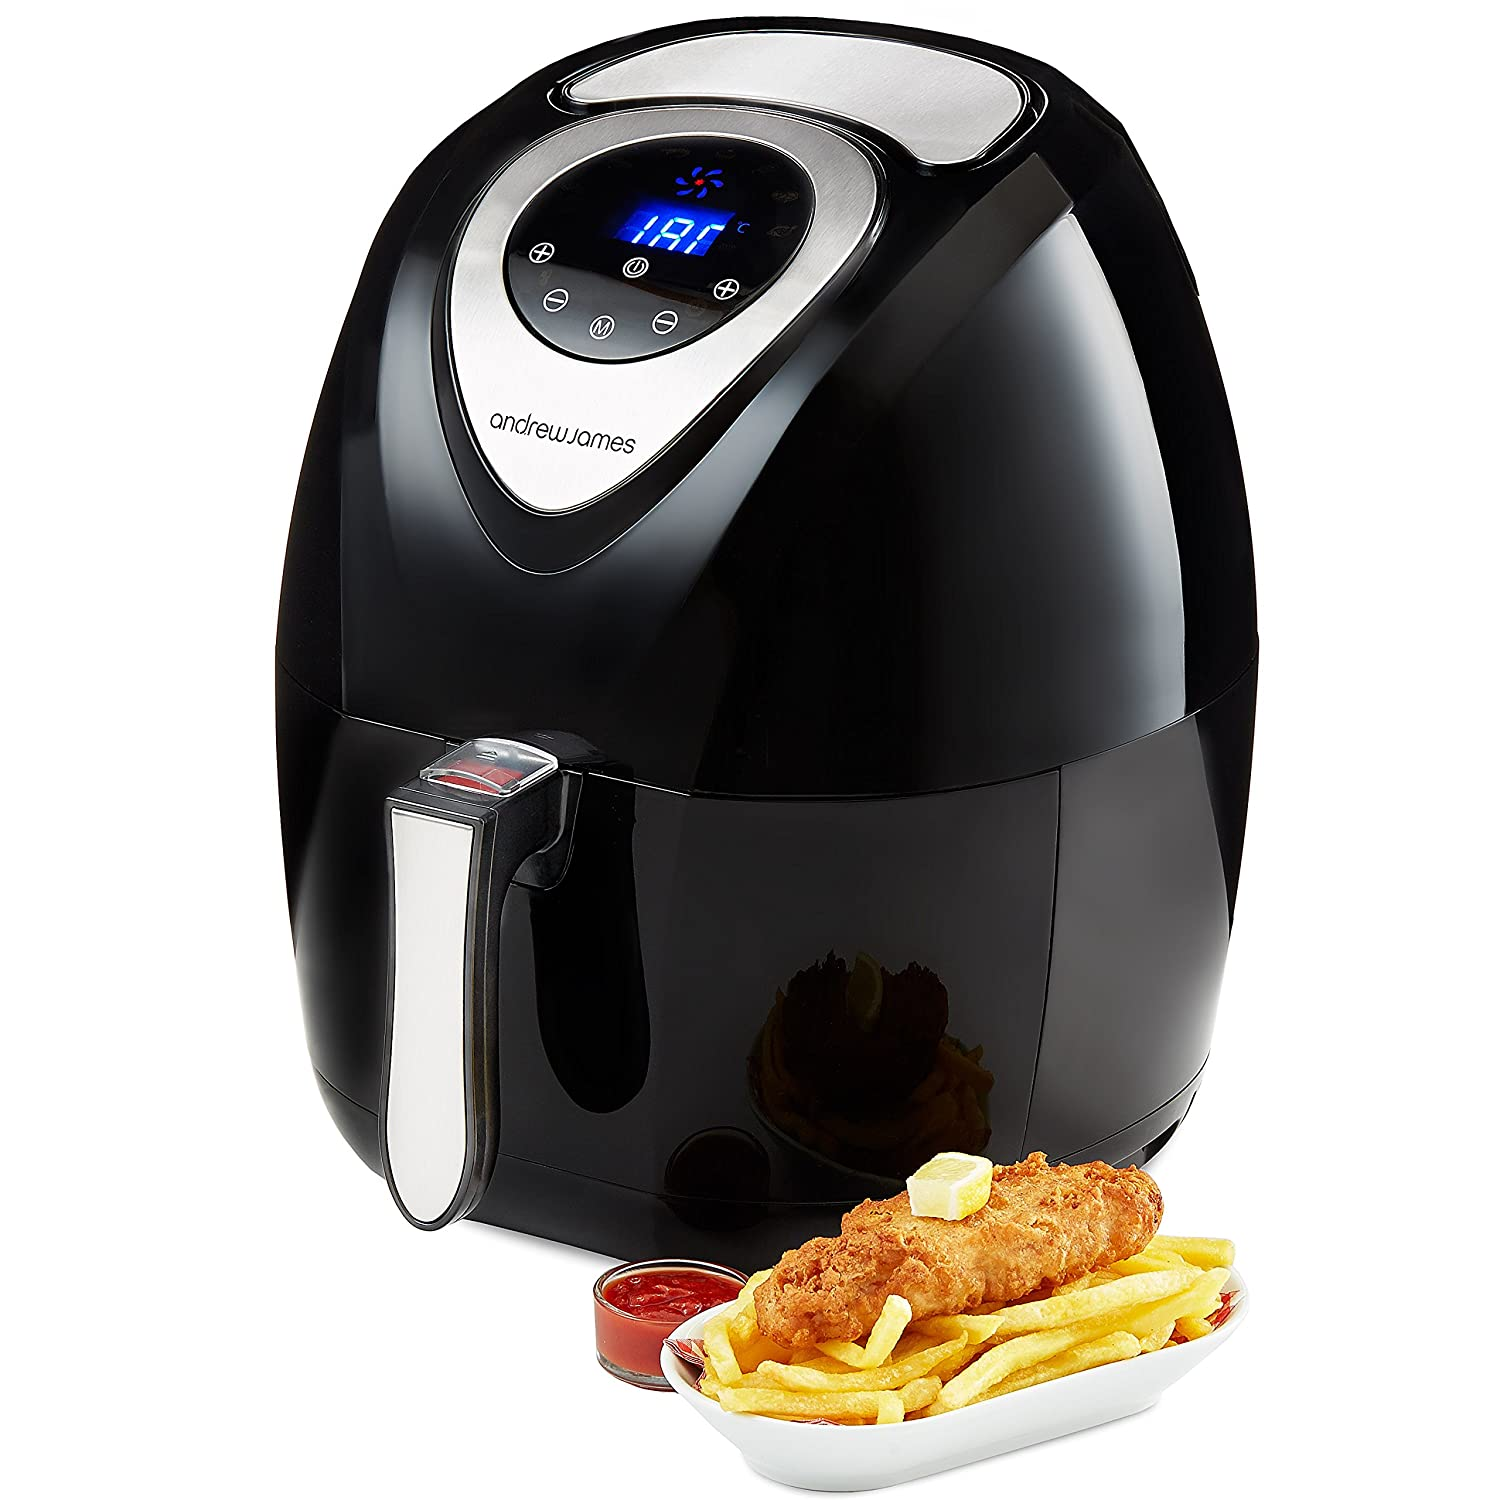 Uncategorized Andrew James Kitchen Appliances andrew james digital air fryer in black healthy oil free low fat cooking 3 2l amazon co uk kitchen home